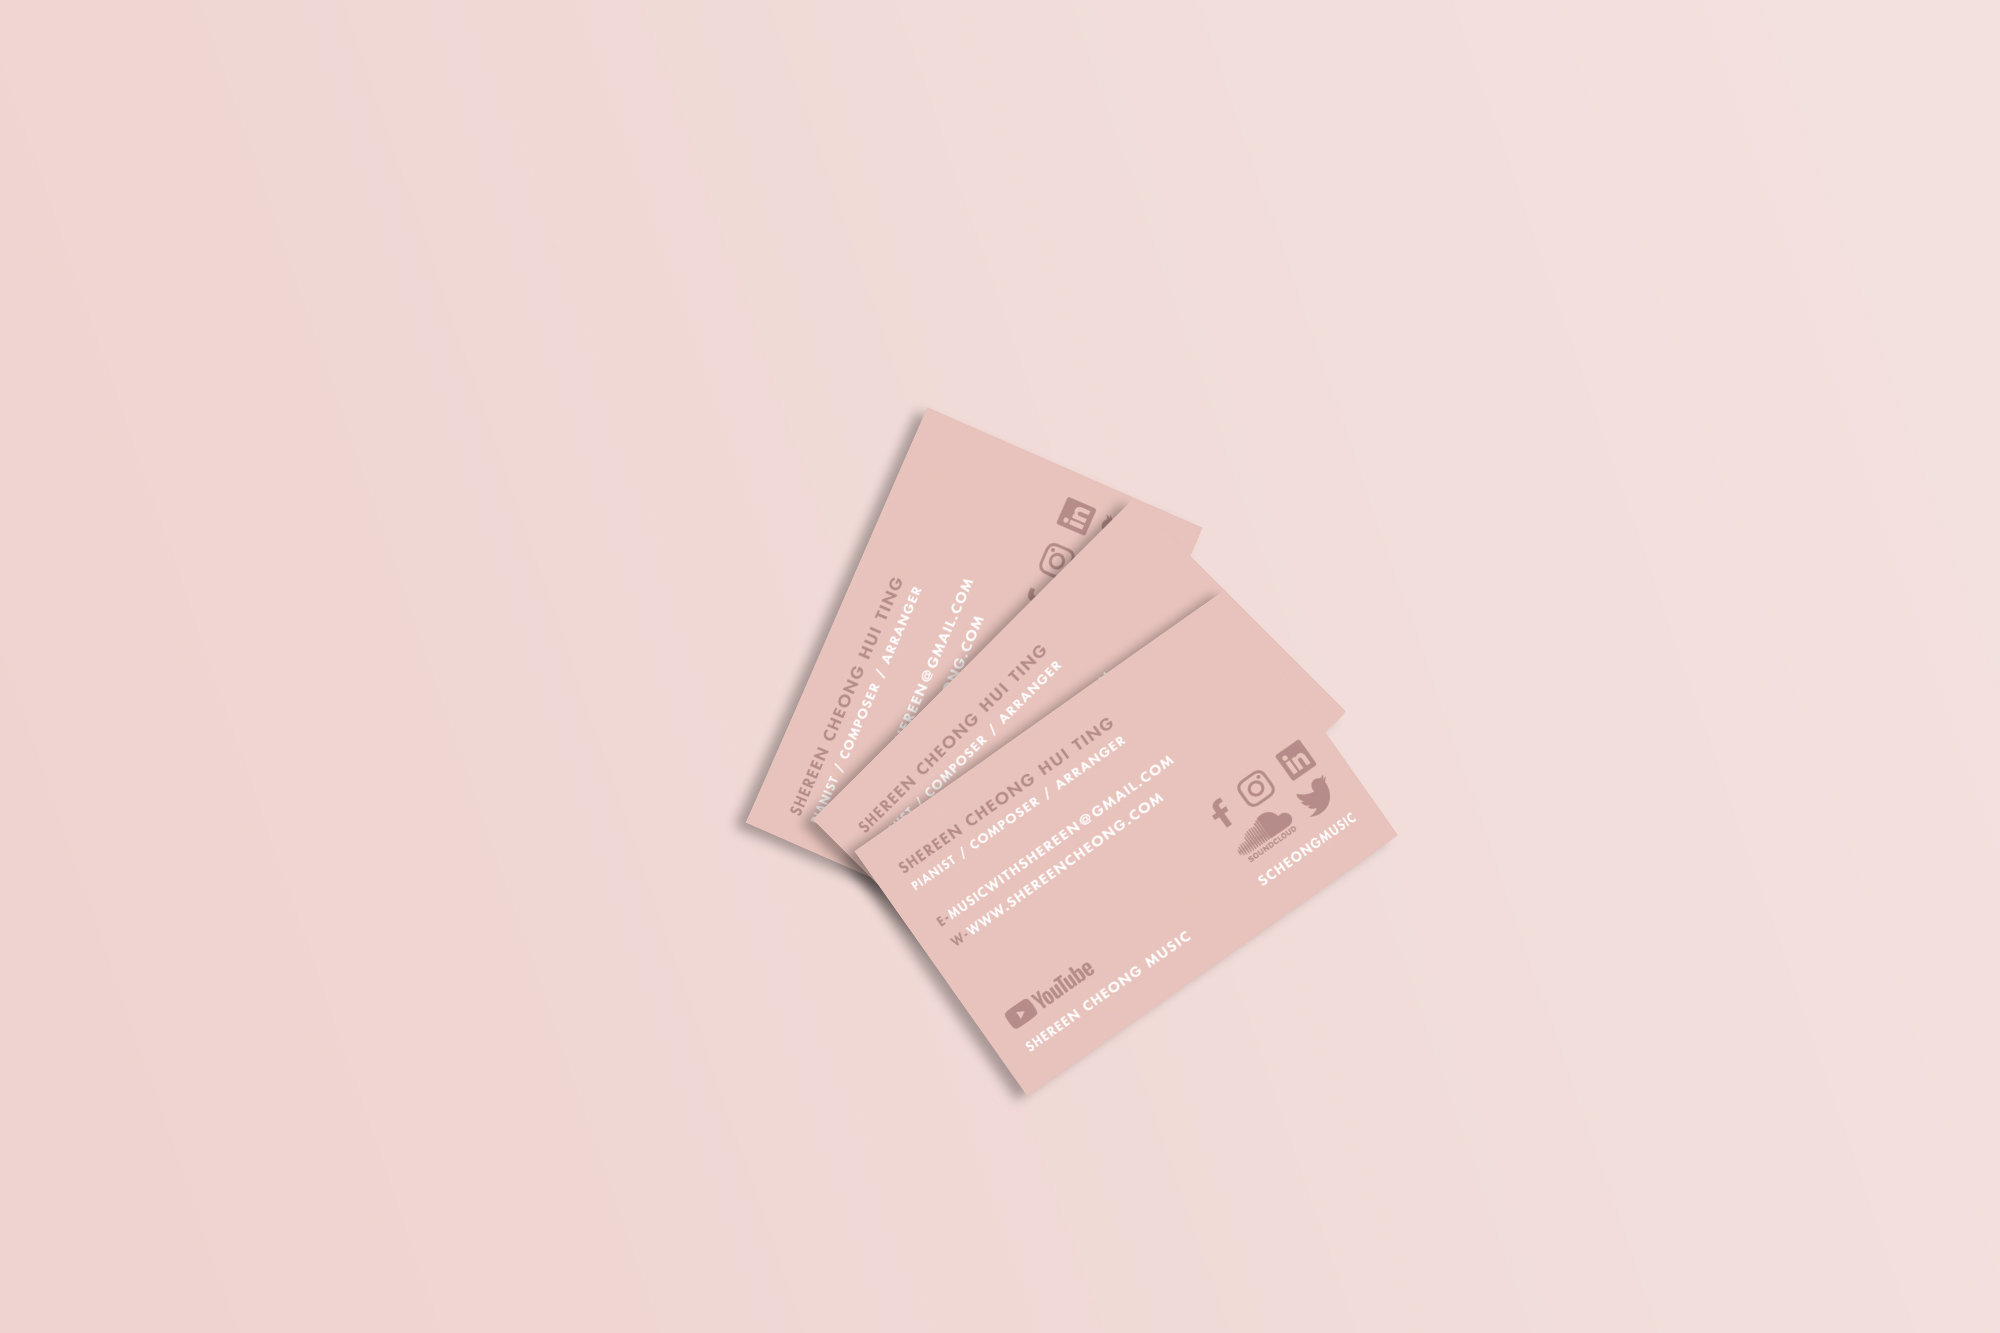 Sher-Business Card Mockup-2.jpg